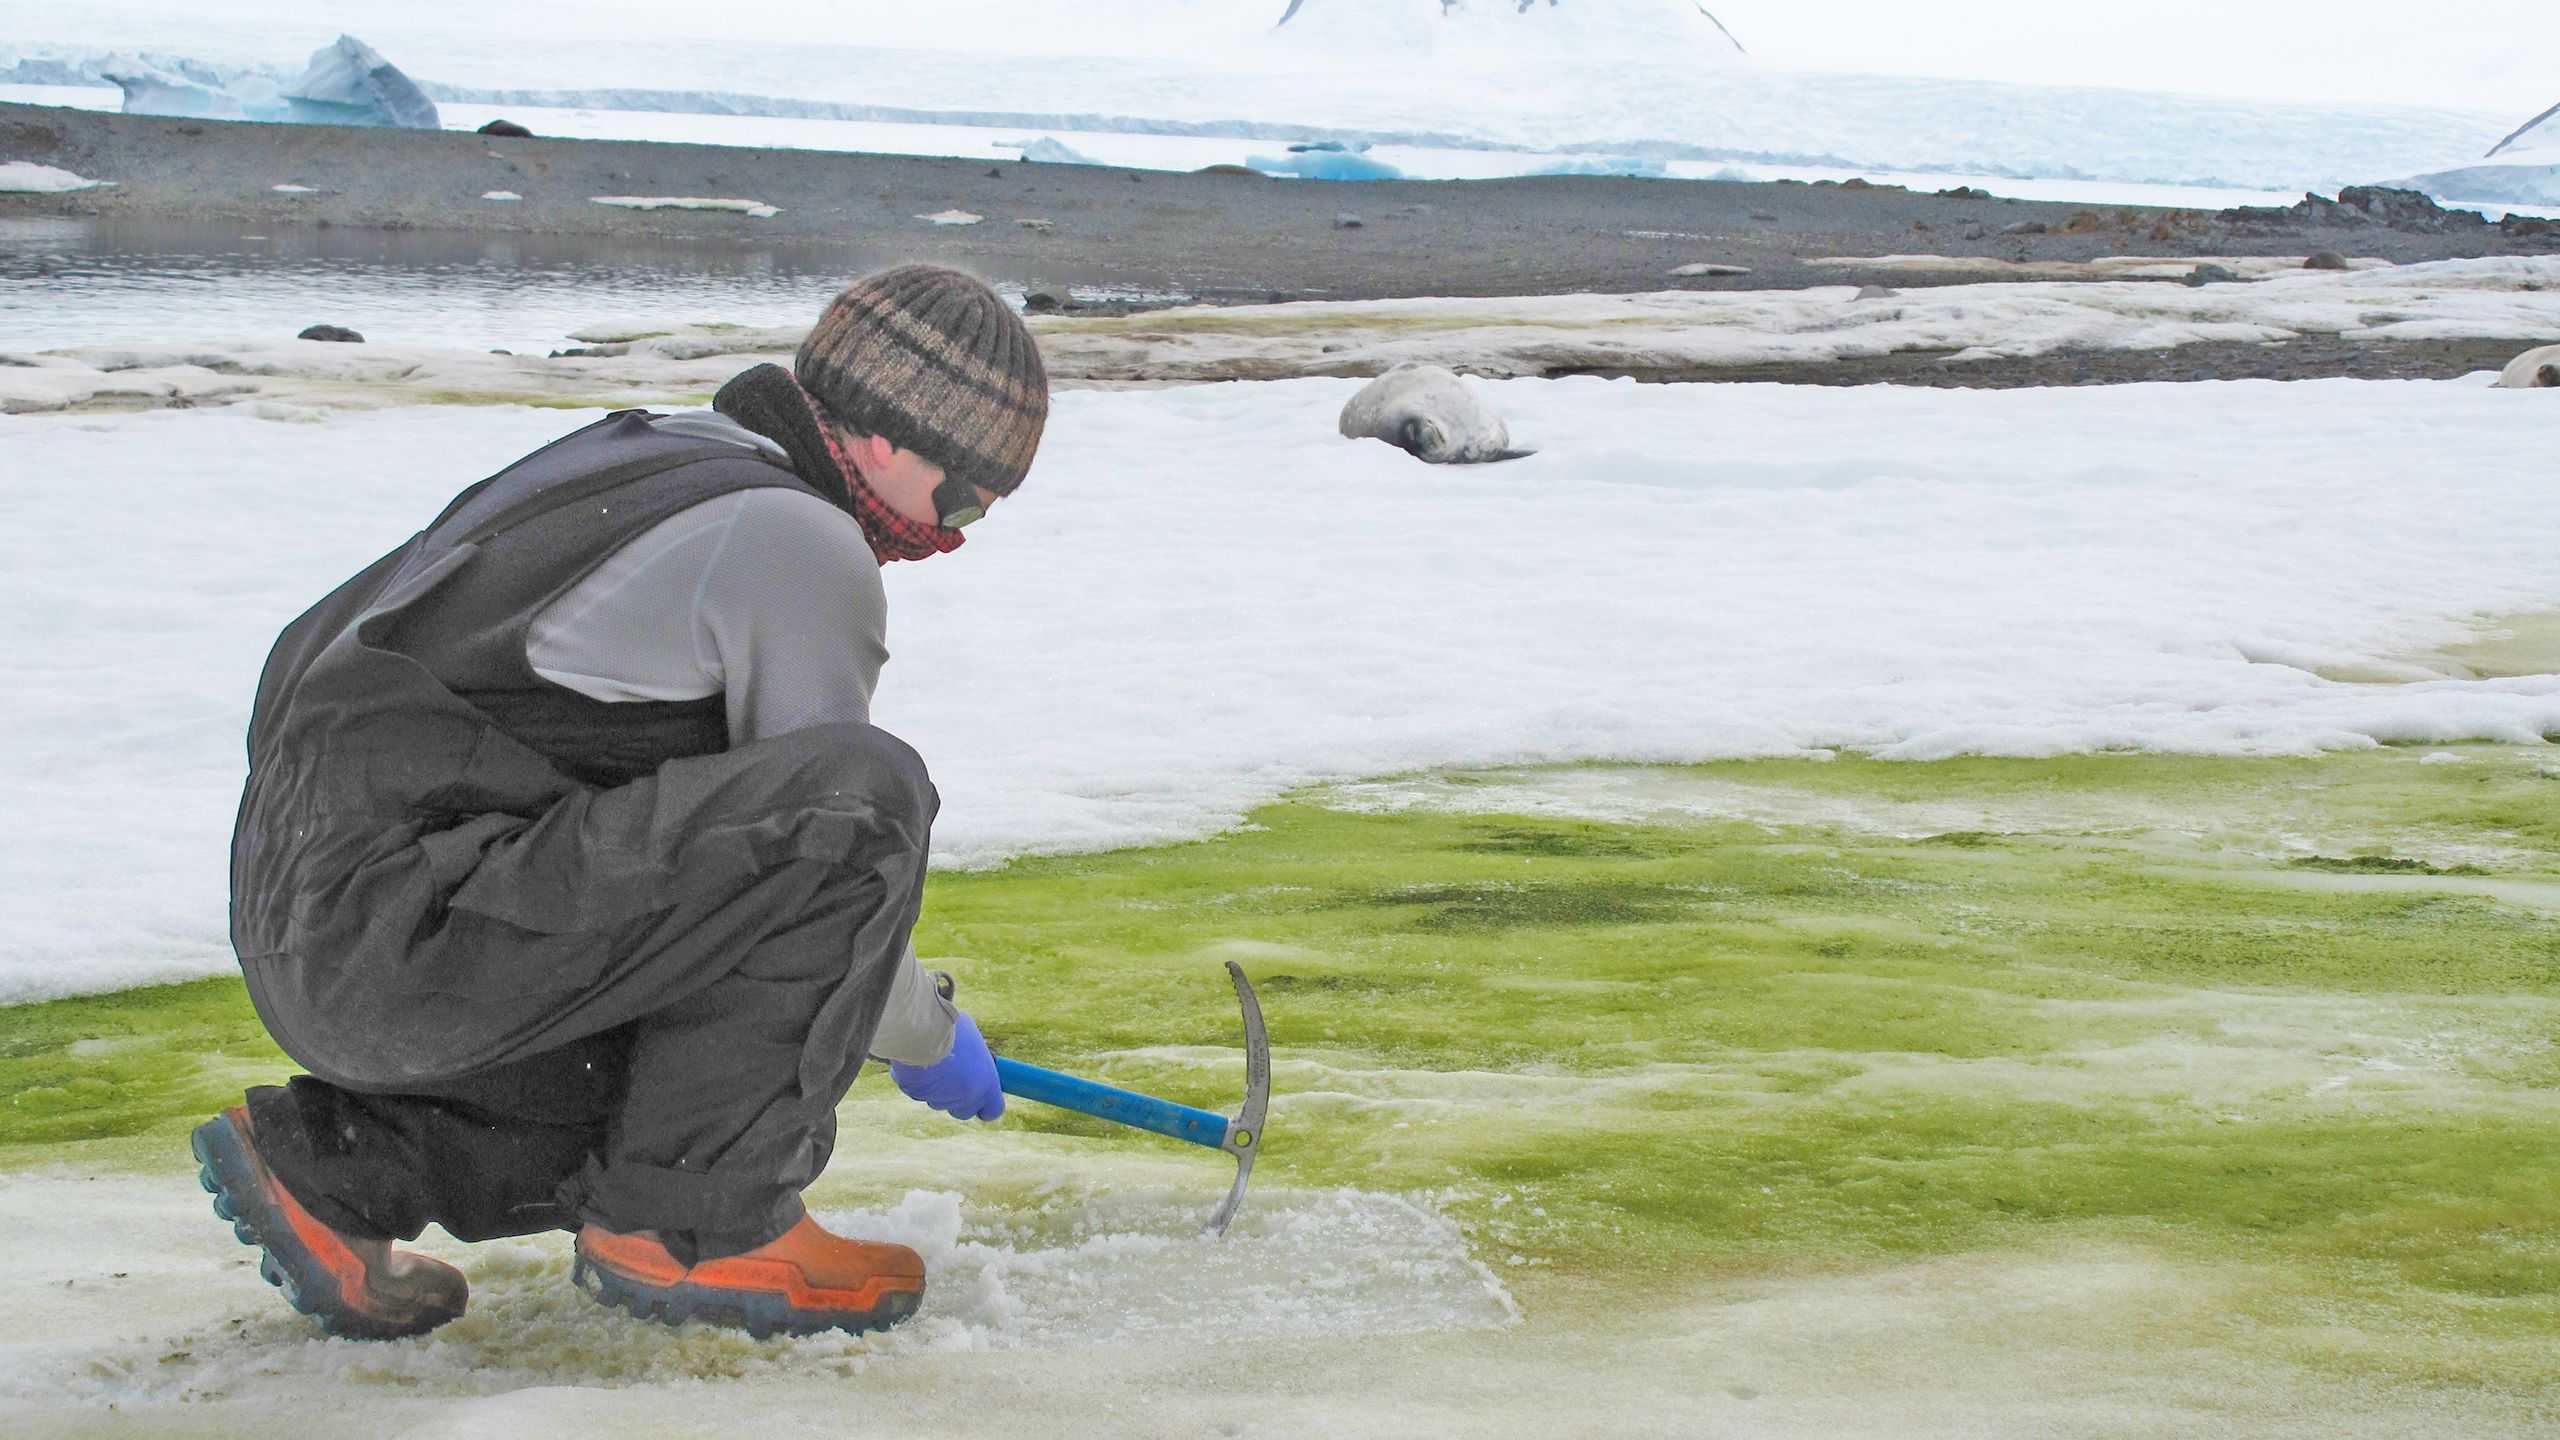 Matt Davey sampling snow algae at Lagoon Island, Antarctica. Credit Sarah Vincent